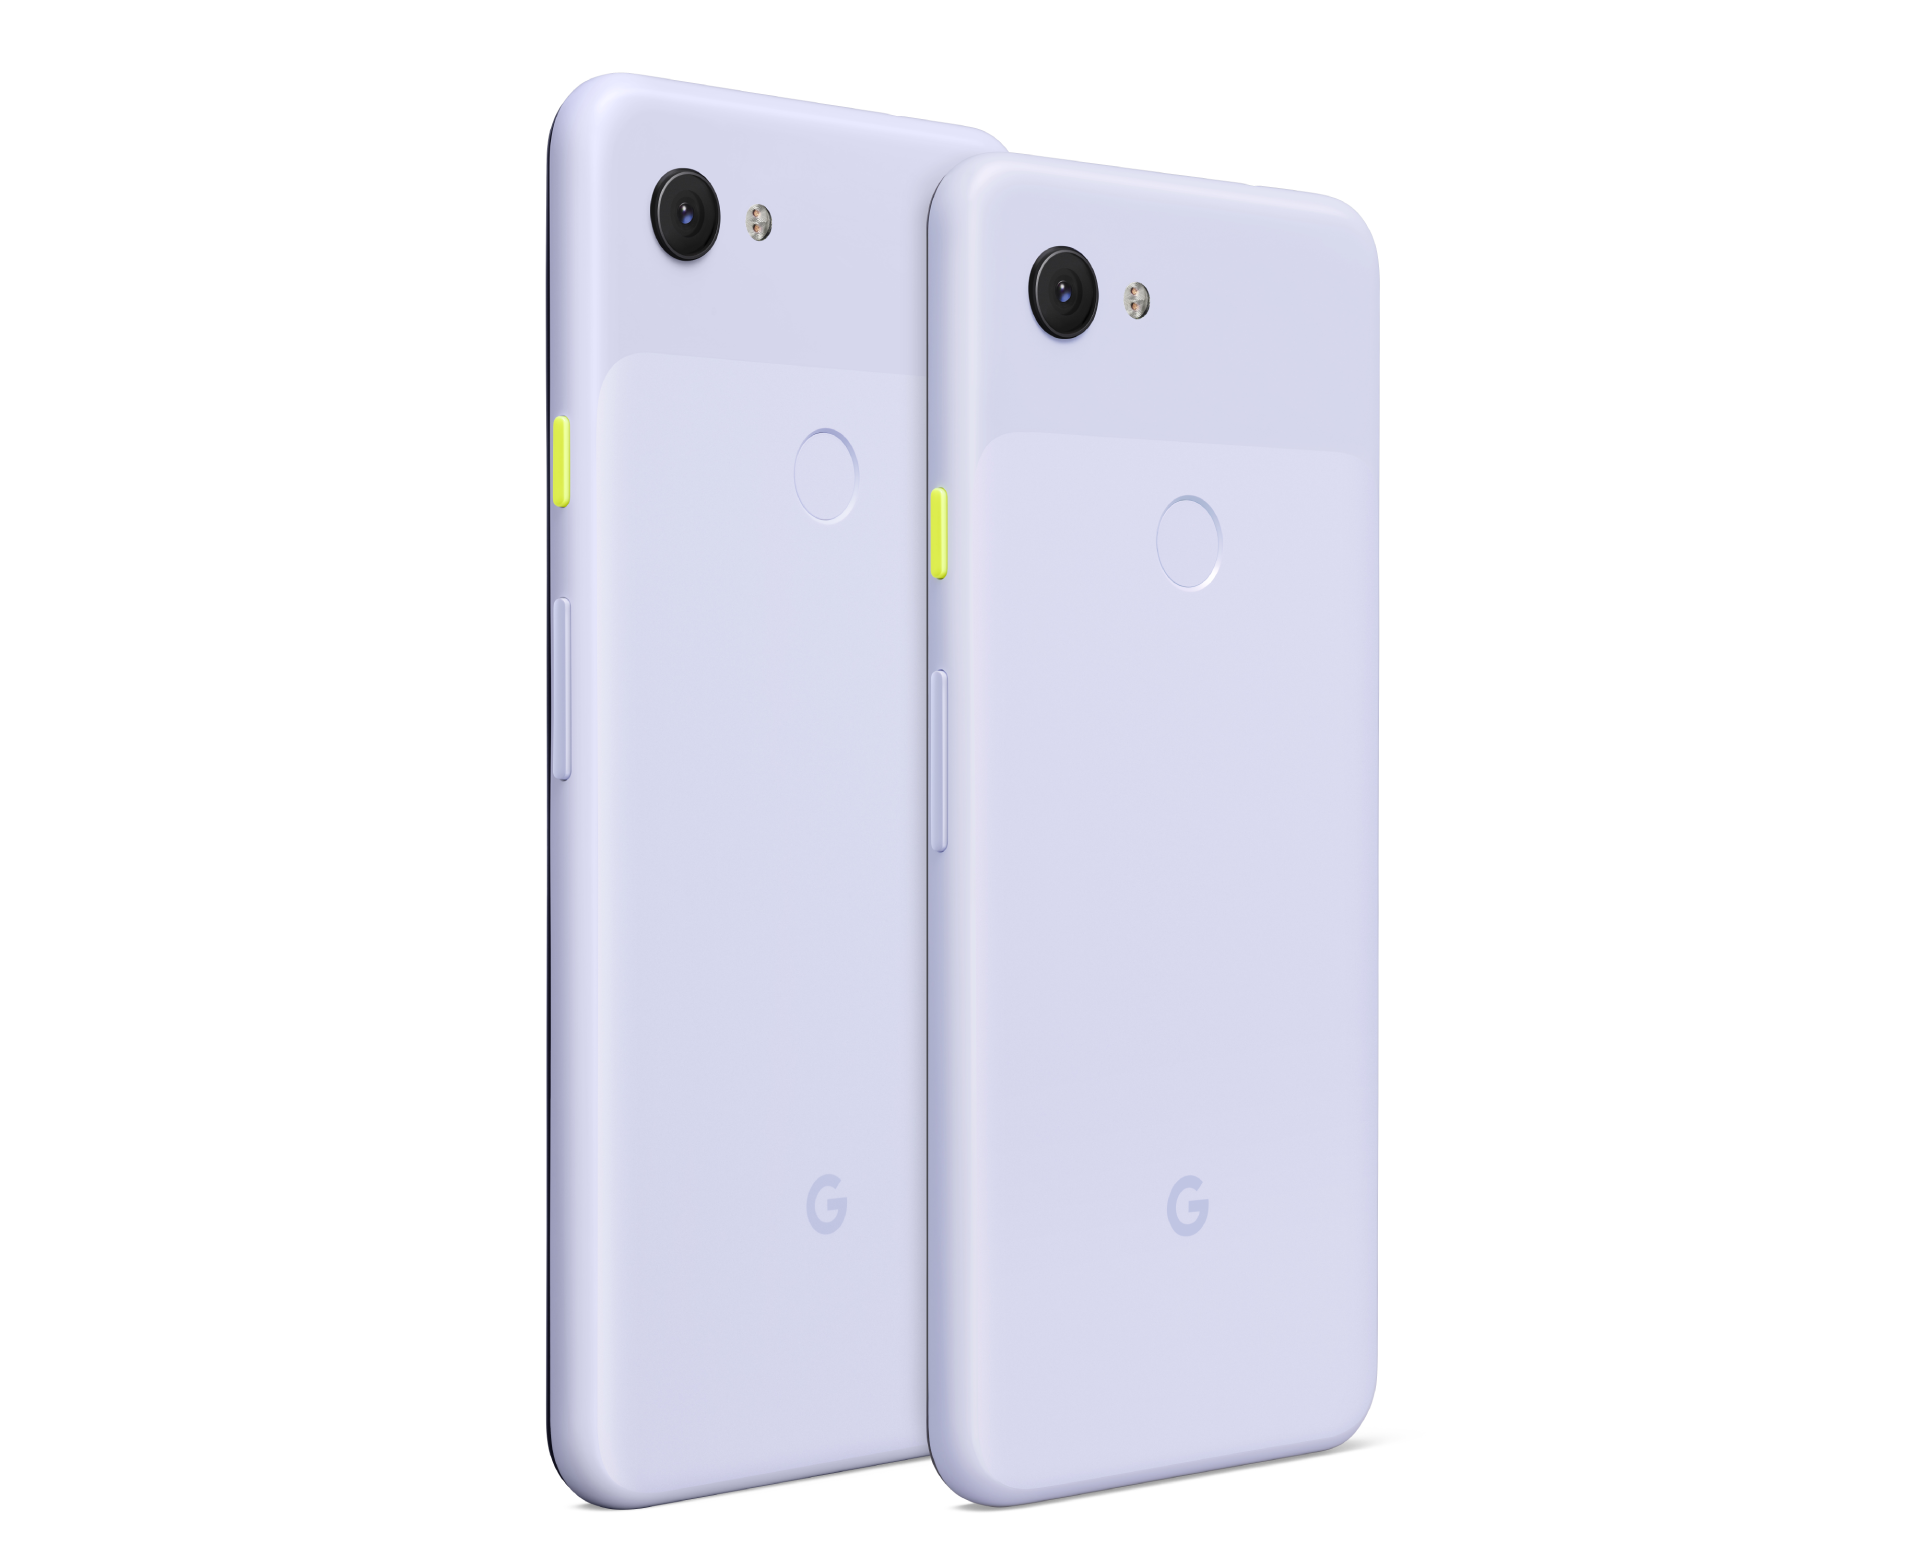 When and where to buy the Google Pixel 3a and 3a XL